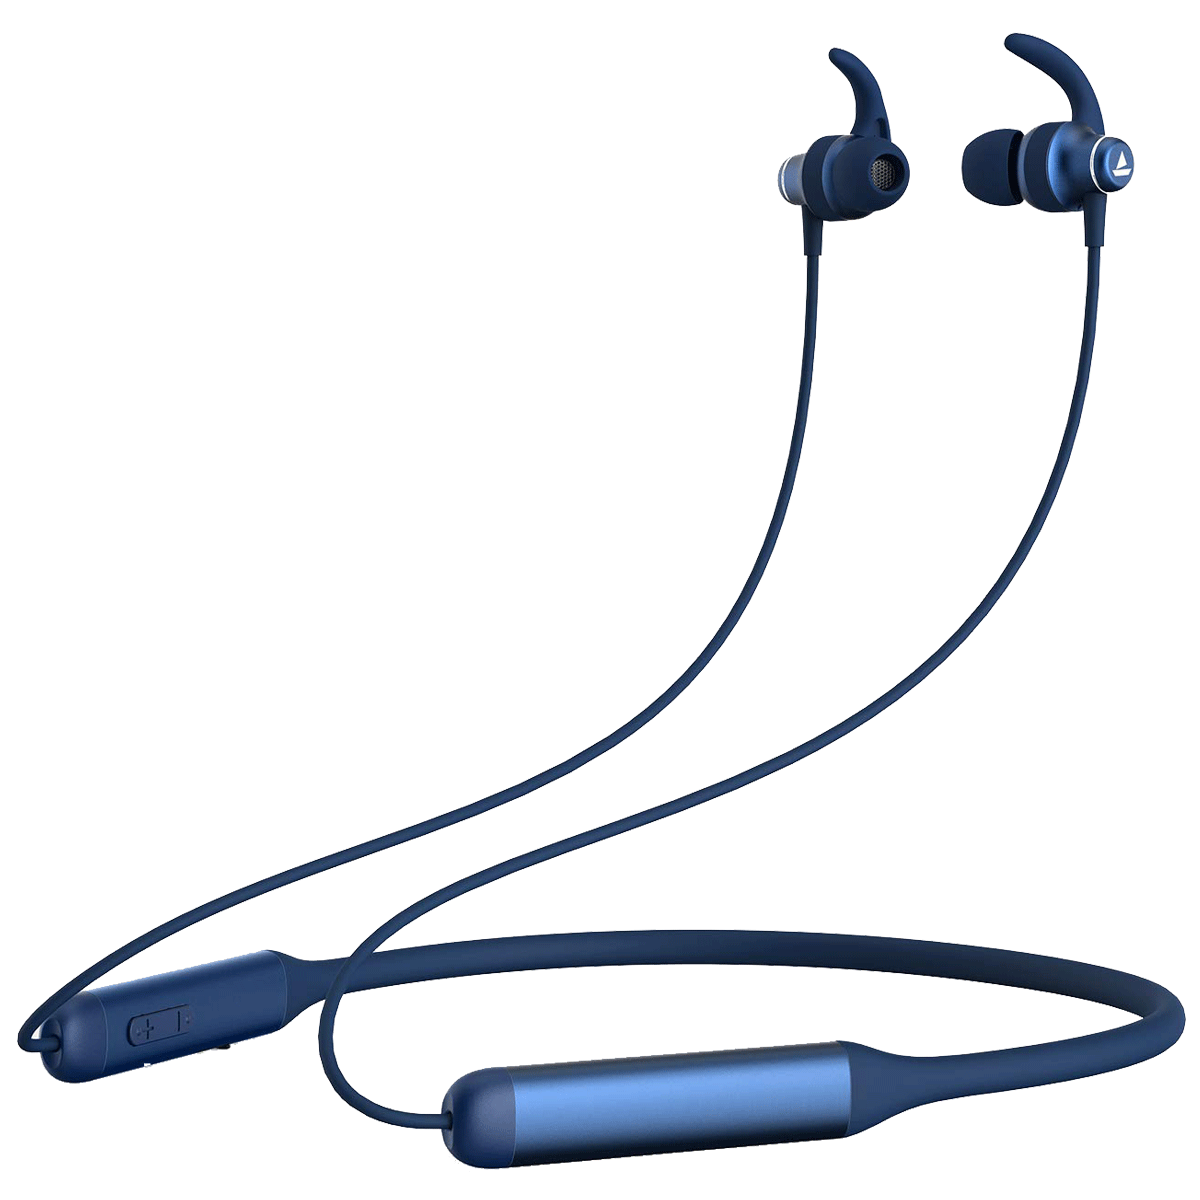 boAt Rockerz 335 In-Ear Wireless Earphone with Mic (Bluetooth 5.0, Voice Assistant Support, Navy Blue)_1